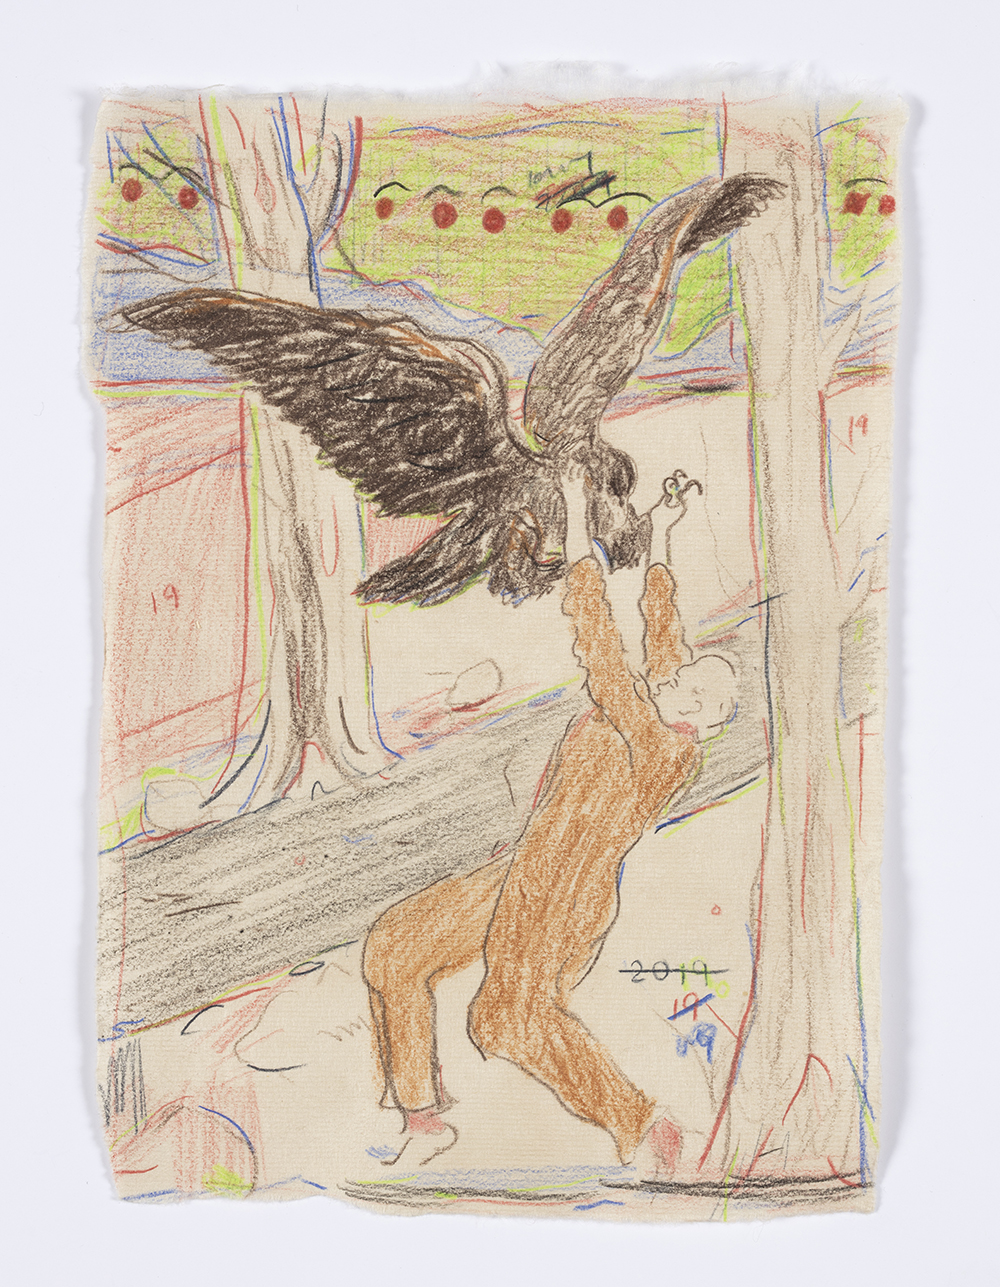 Kevin McNamee-Tweed. <em>Eagle Walk</em>, 2019. Graphite and colored pencil on mulberry paper, 8 1/8 x 5 3/4 inches  (20.6 x 14.6 cm)